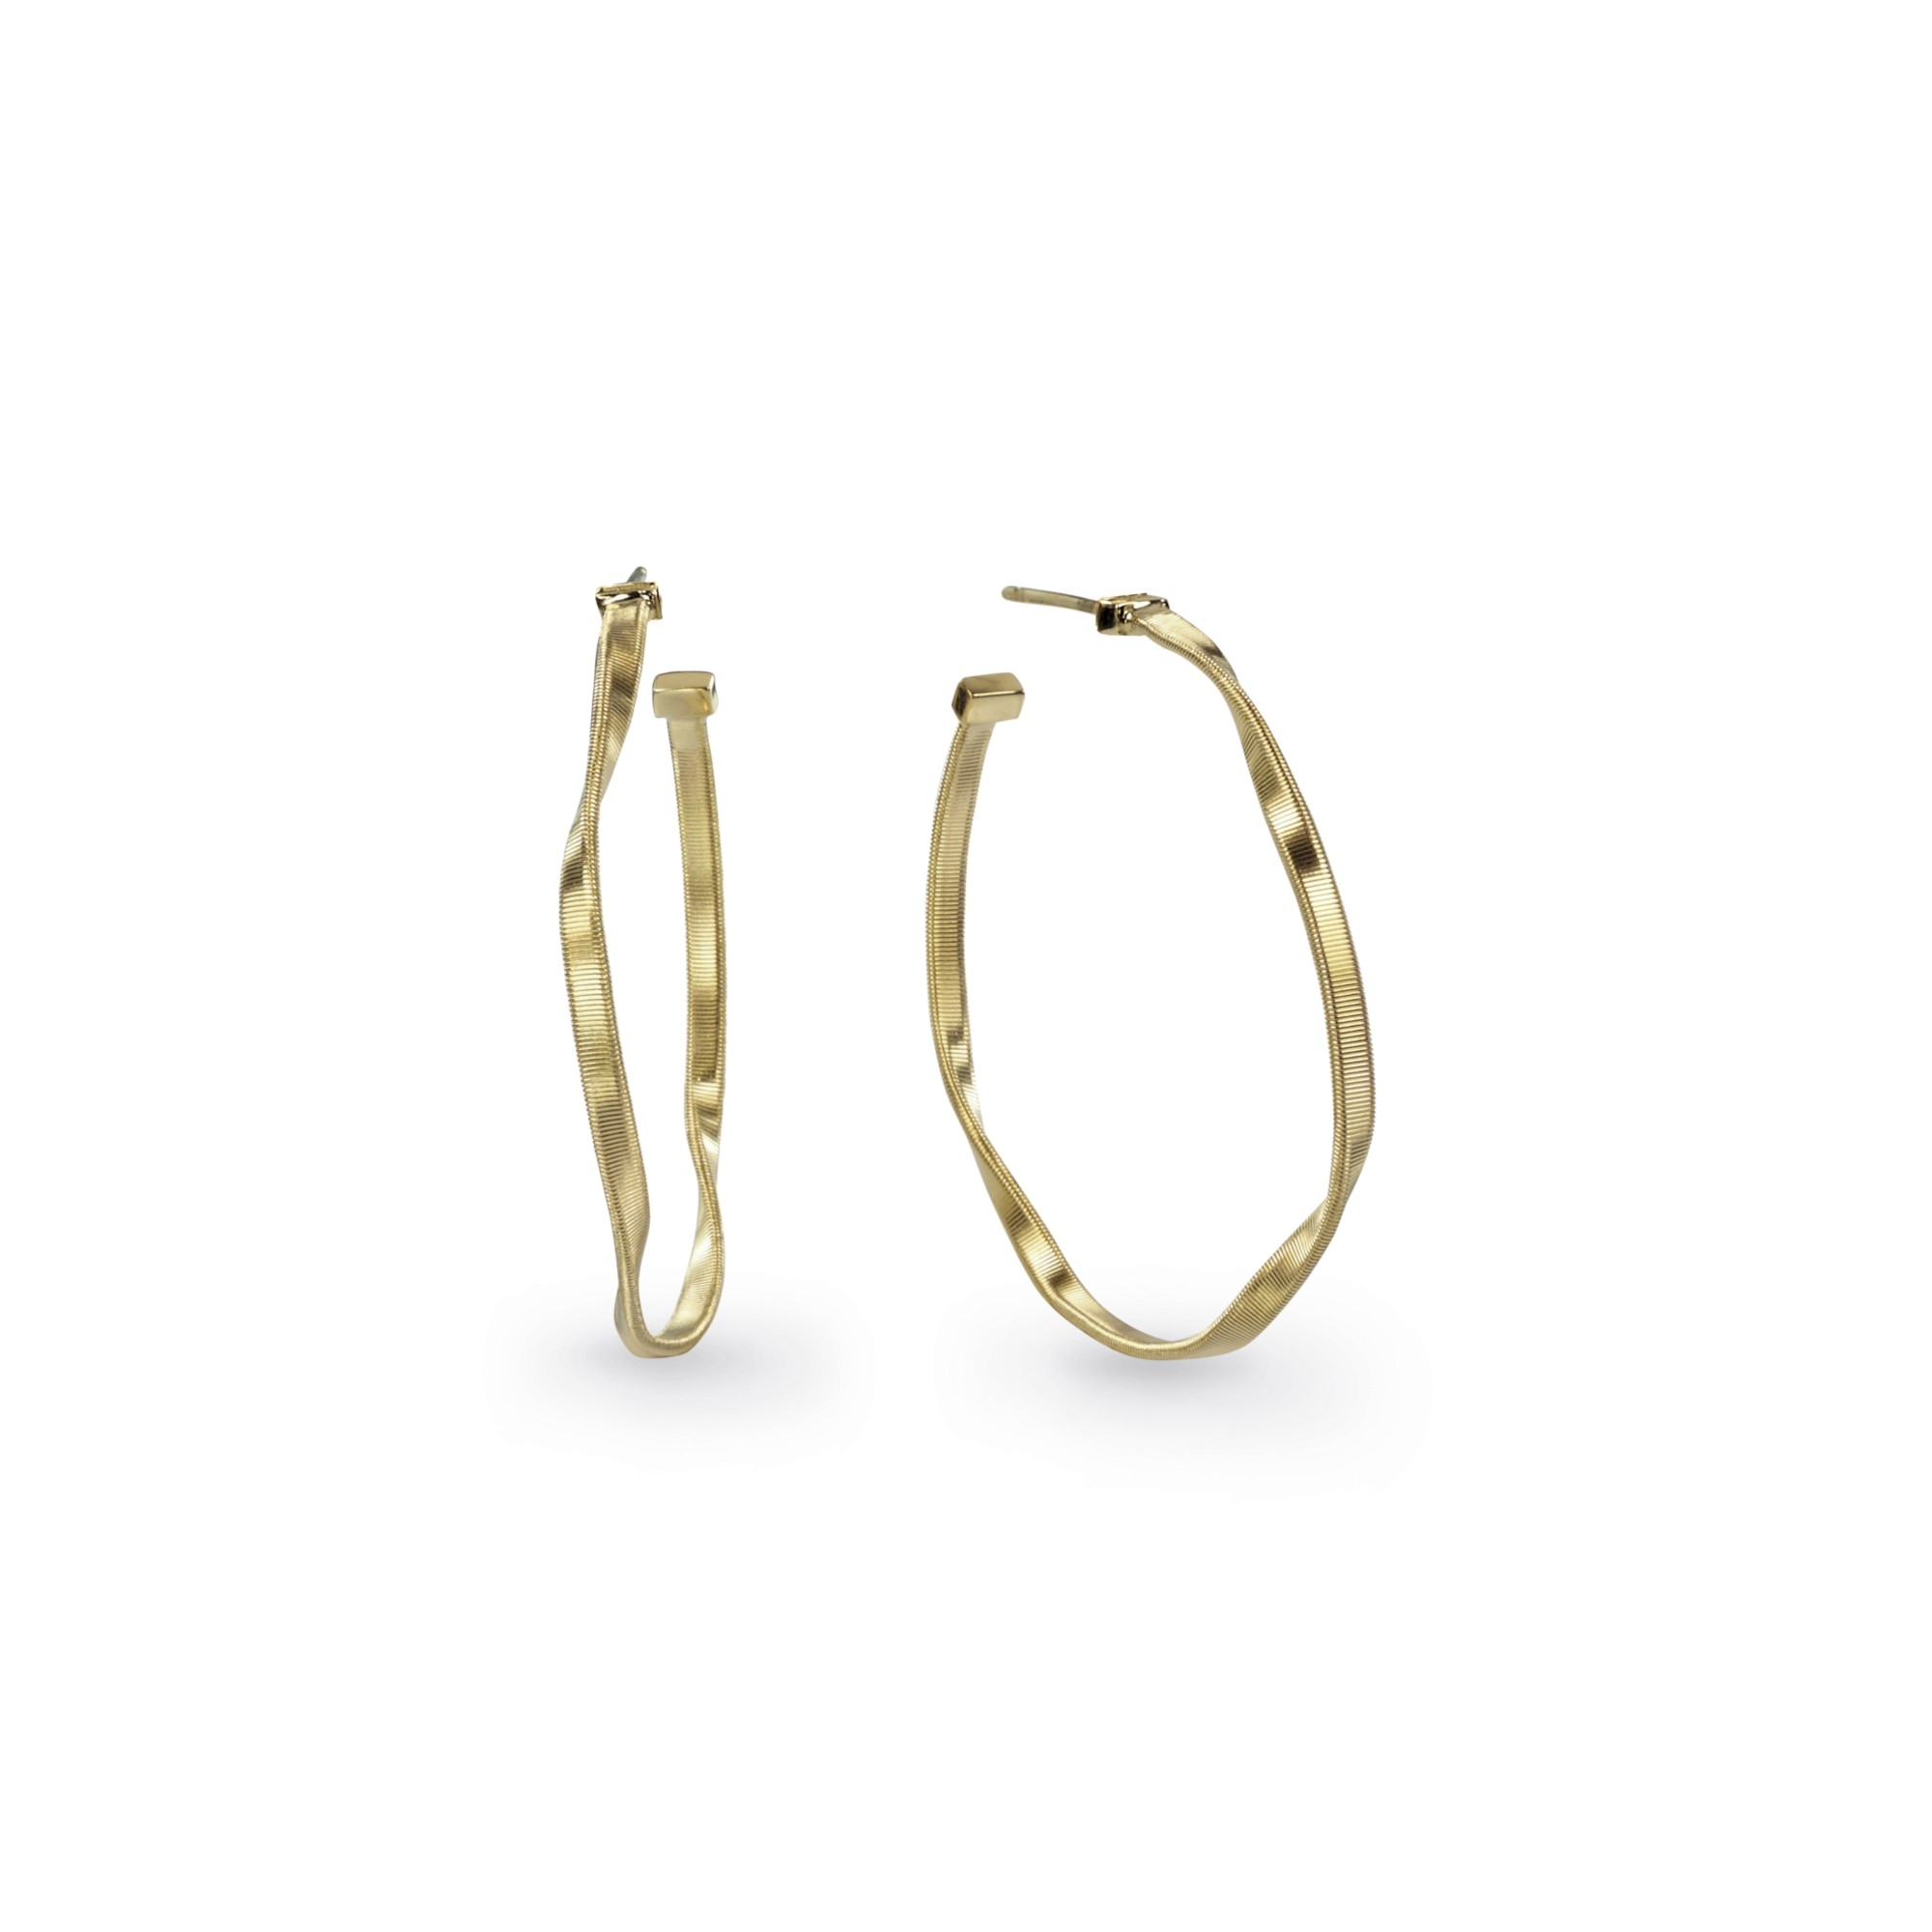 Marco Bicego 18K Yellow Gold    Gold Earrings OG256 Y